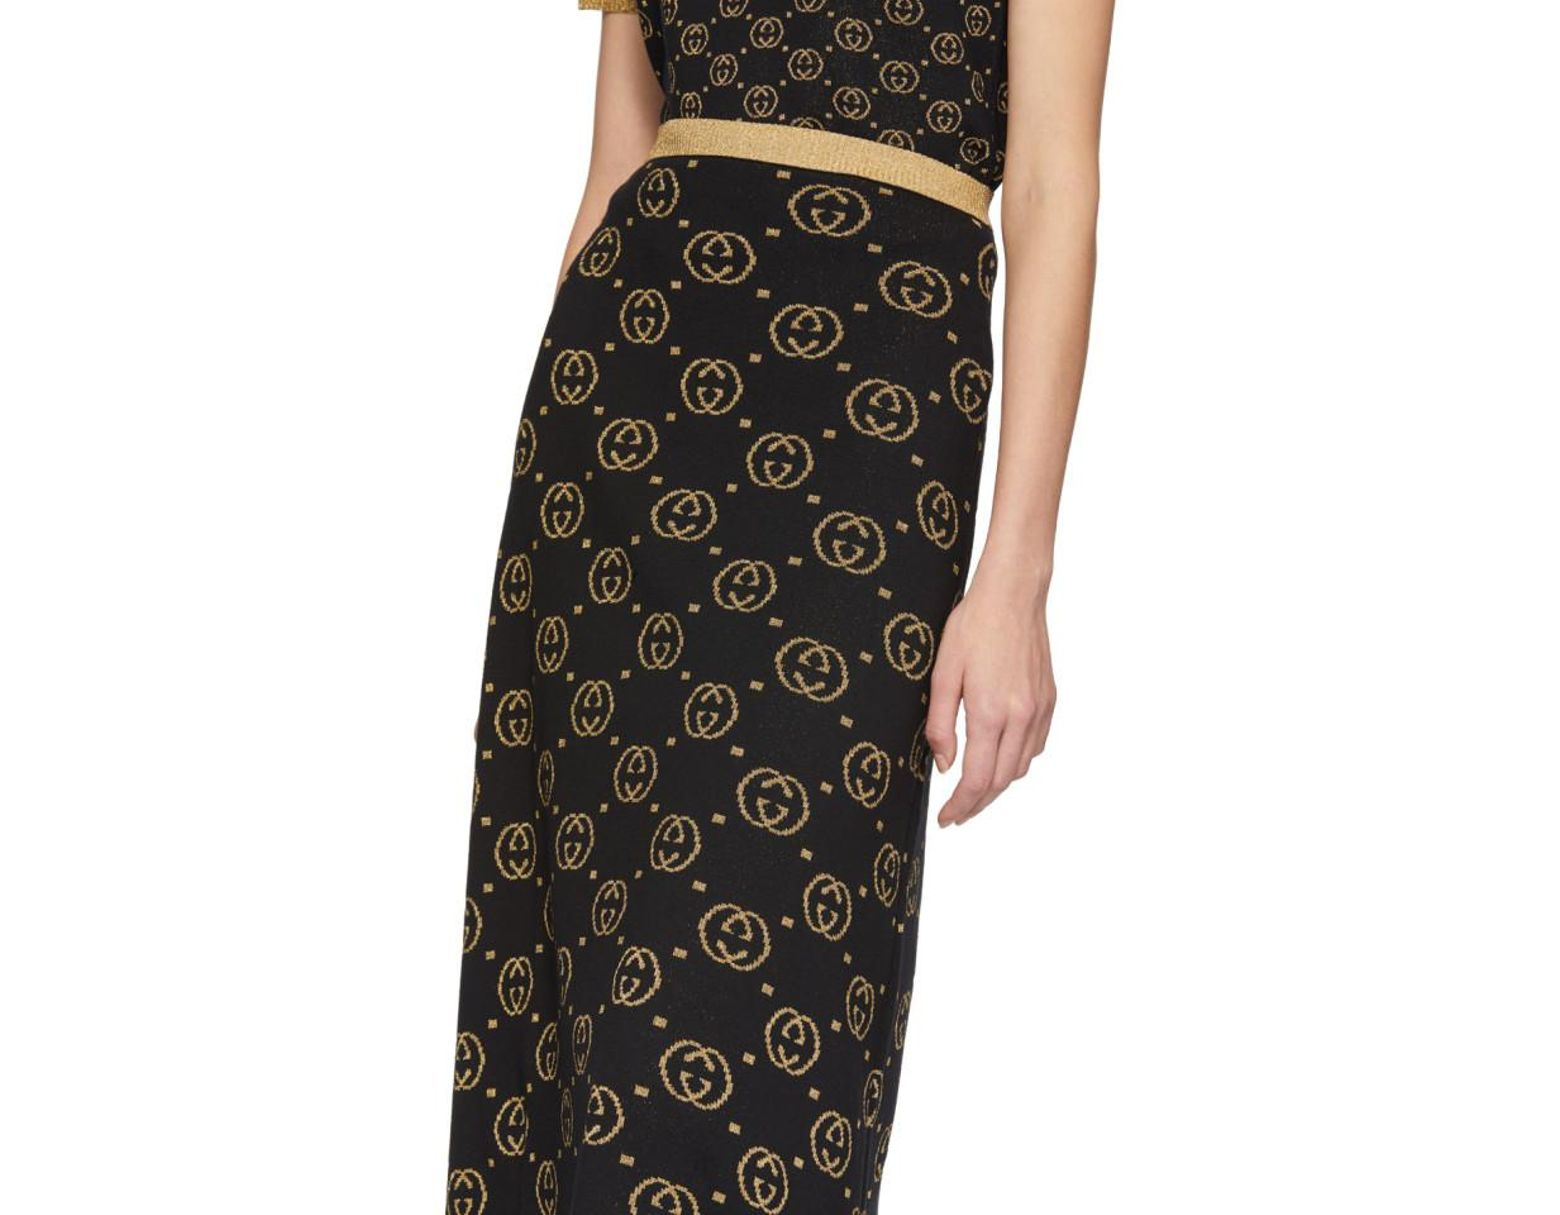 3b9a2eb08 Gucci Black And Gold Wool GG Skirt in Black - Lyst